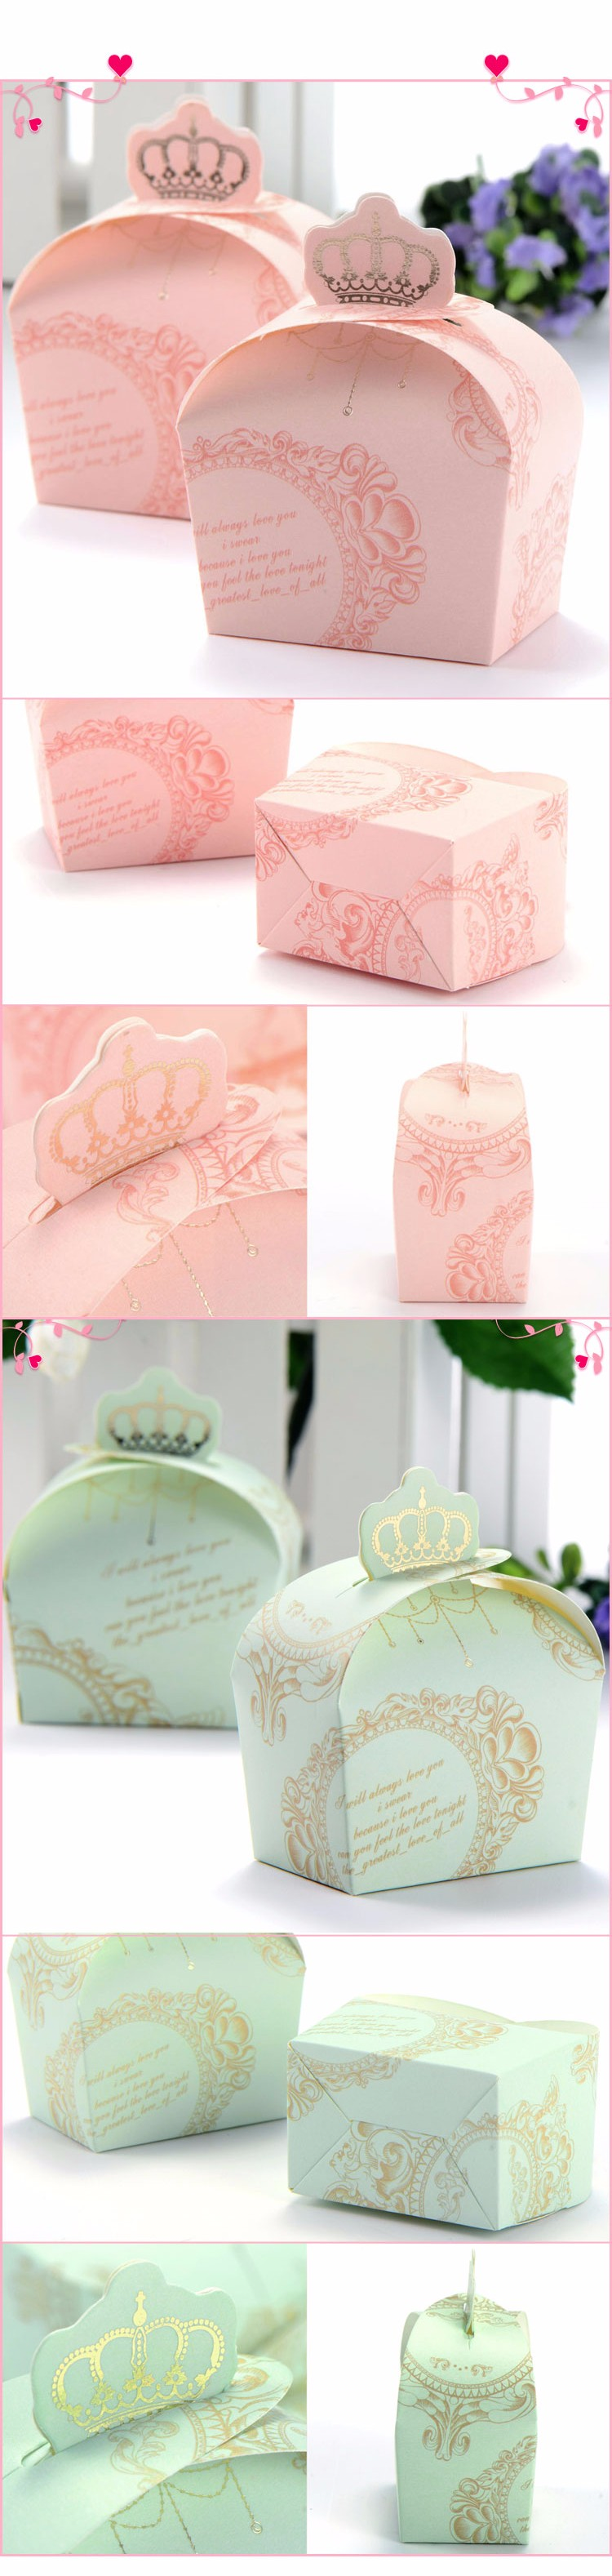 50 pieces/lot) Wedding Decorations Pink Color Crown Candy Box Gift ...